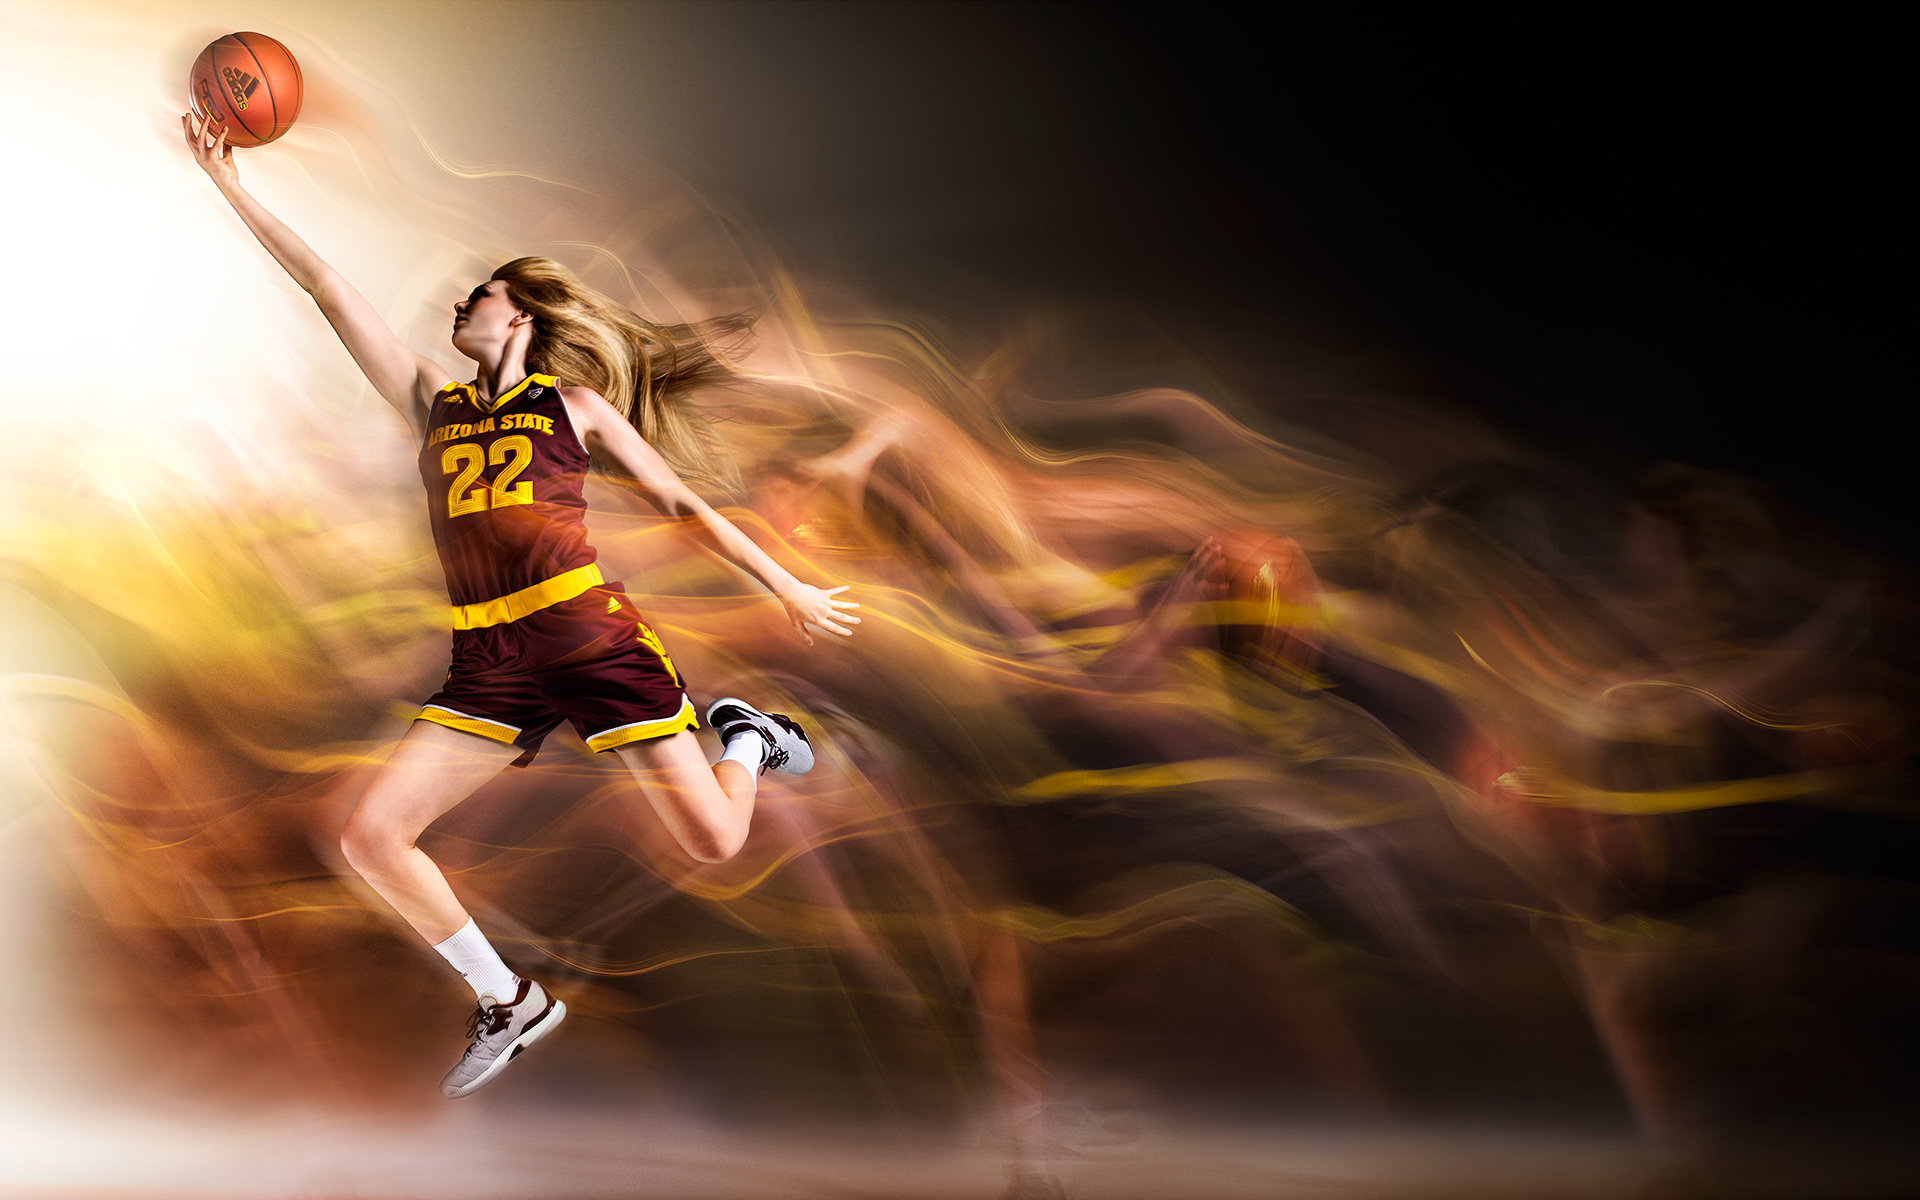 Basketball Advertising Campaign by Blair Bunting